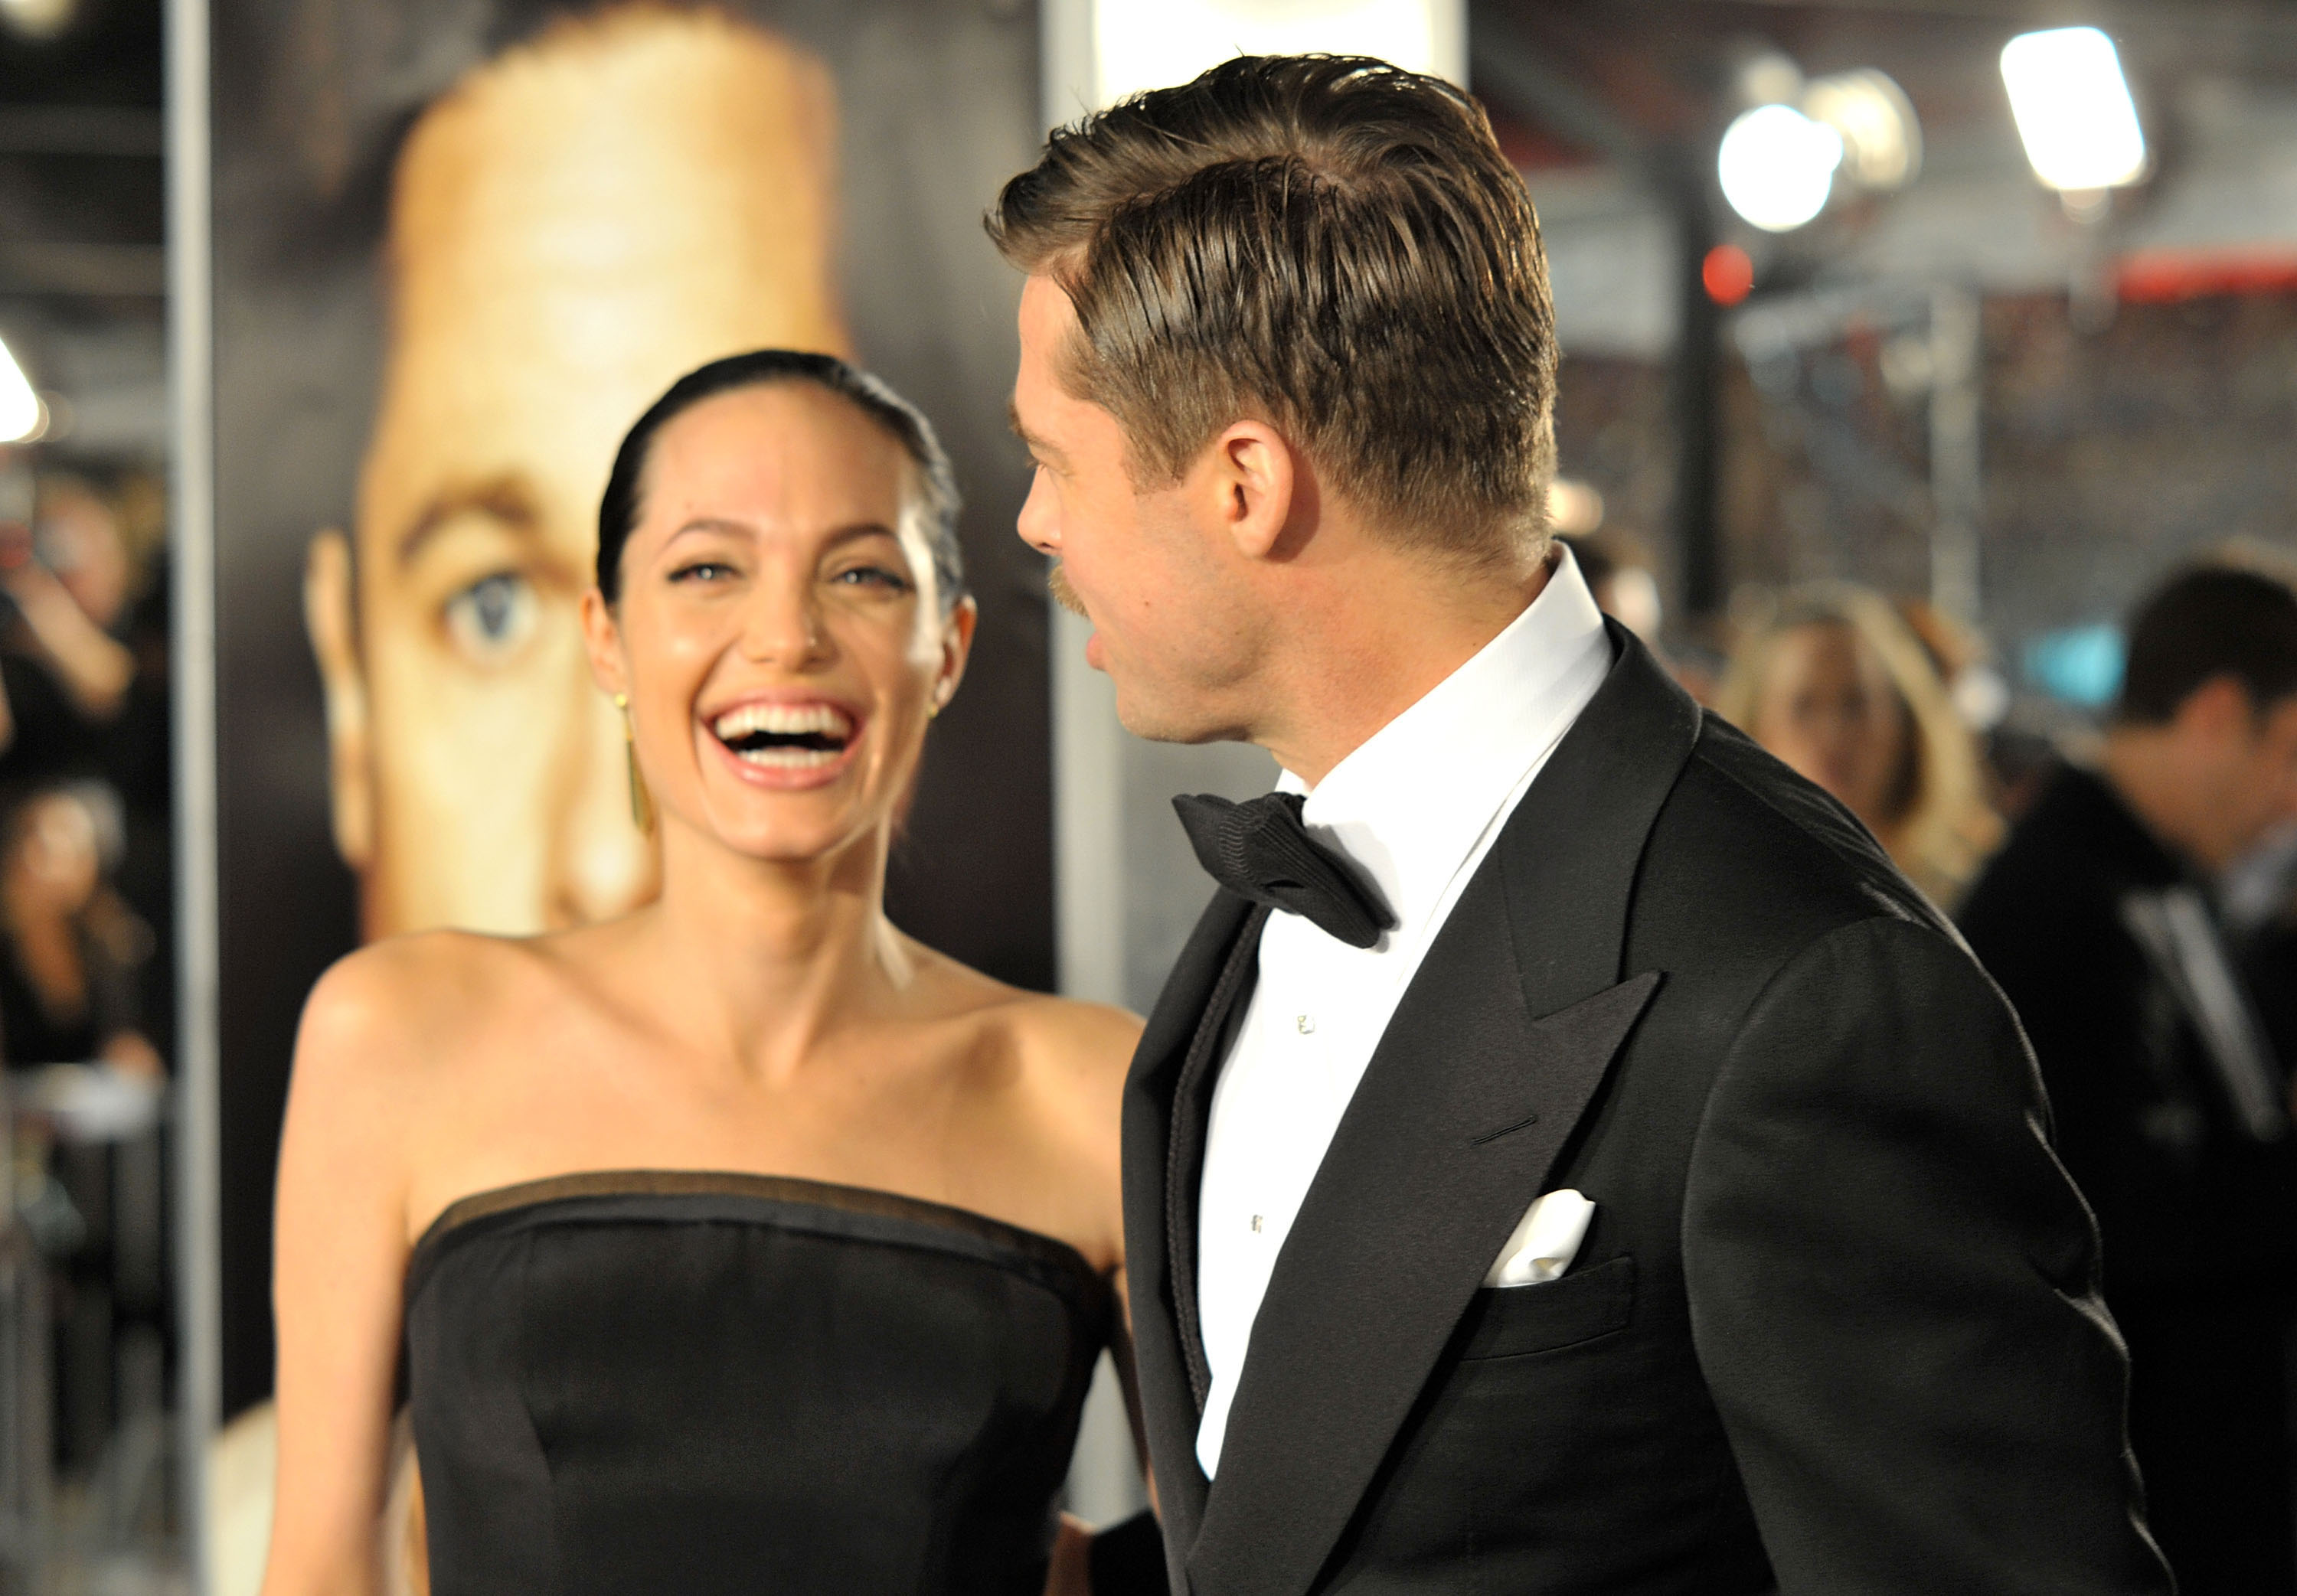 Angelina Jolie and Brad Pitt were full of laughs at the December 2008 LA premiere of his film The Curious Case of Benjamin Button.